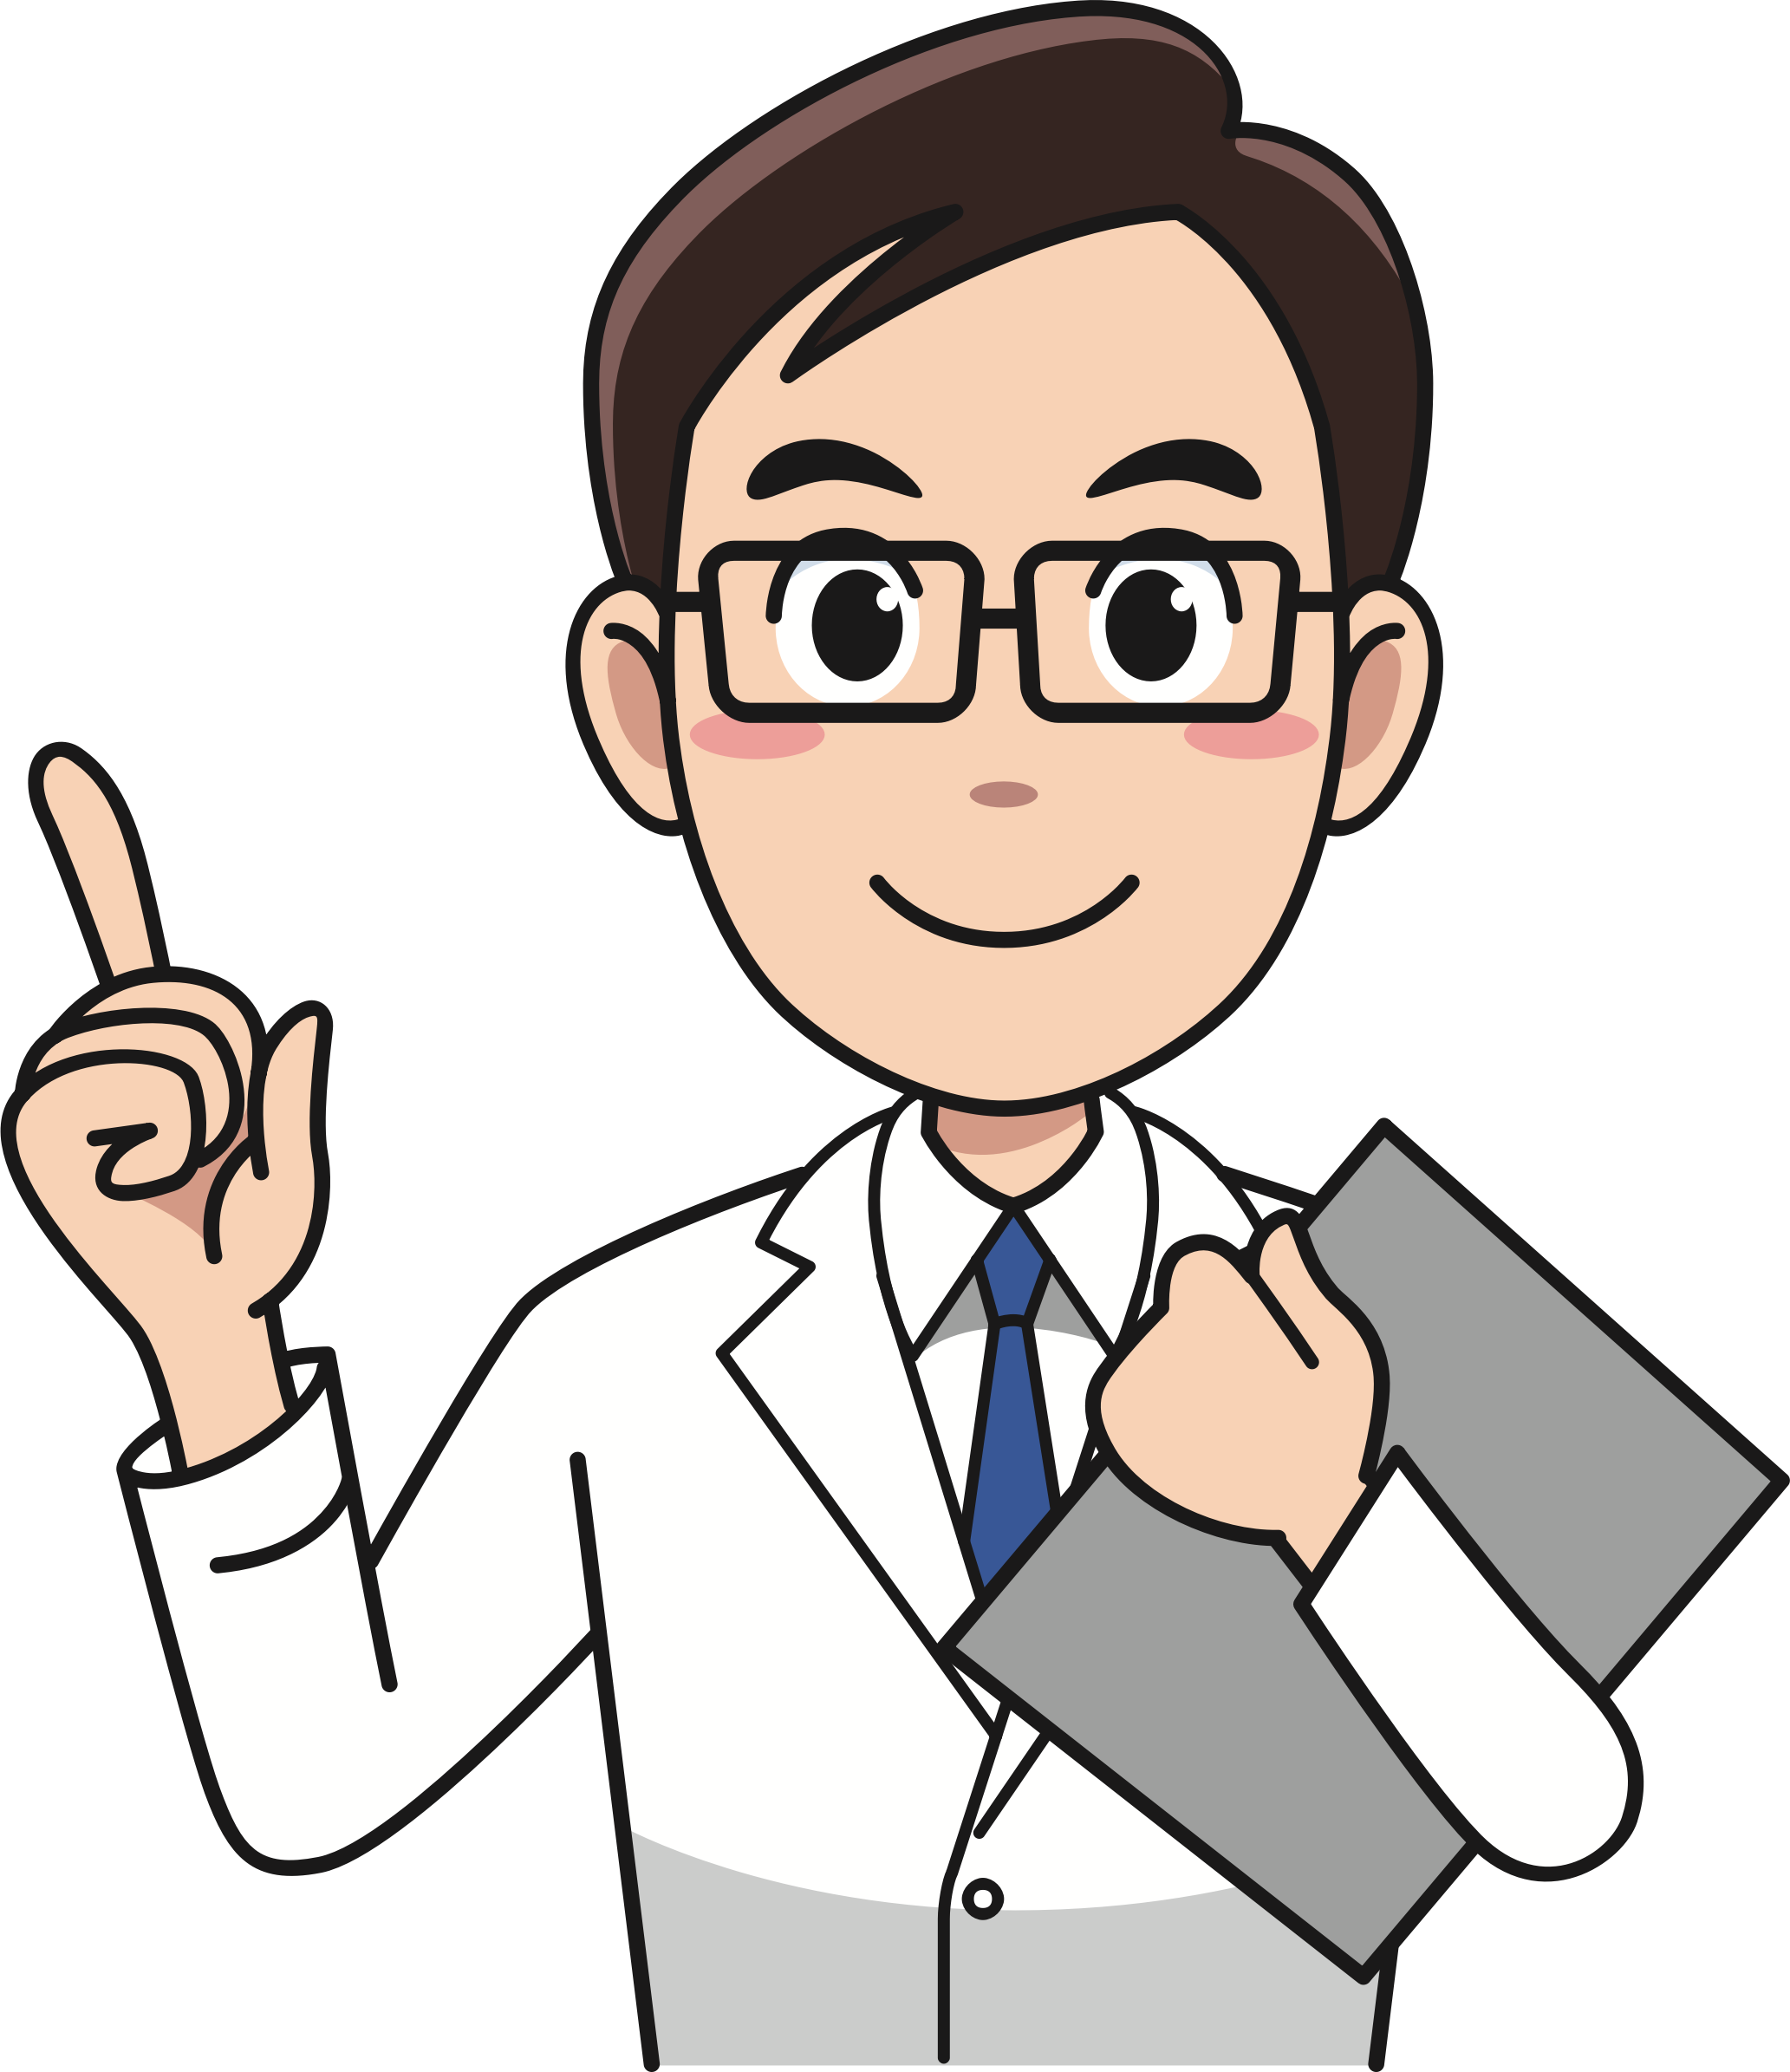 Big image png. Doctor clipart character